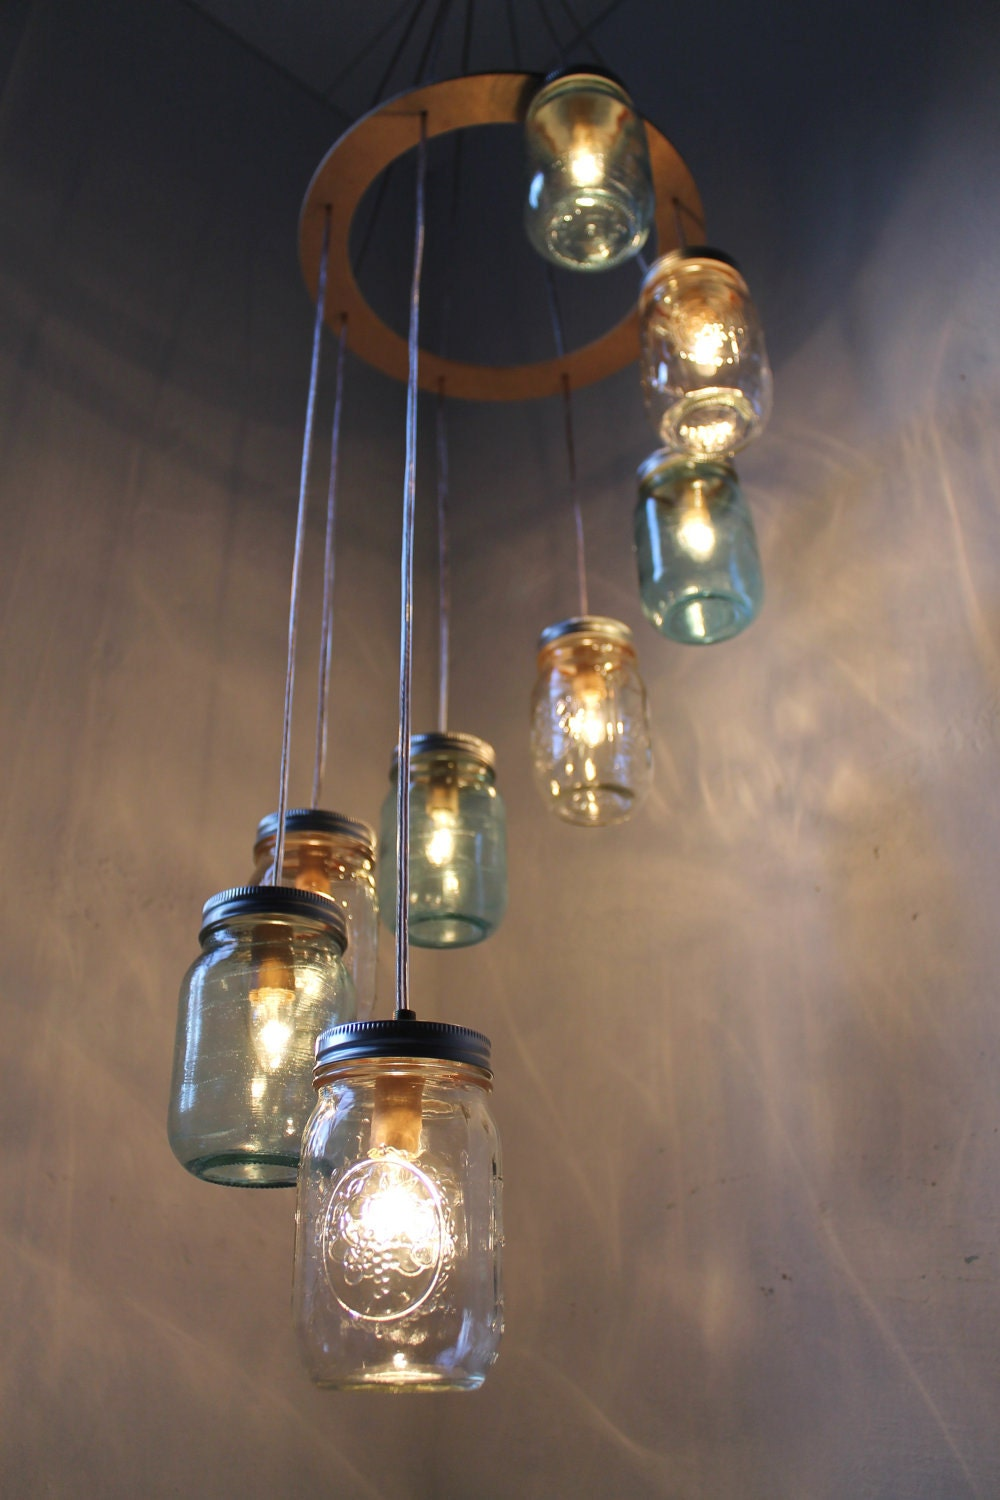 Diy Light Fixtures Mason Jar Diy Craft Projects